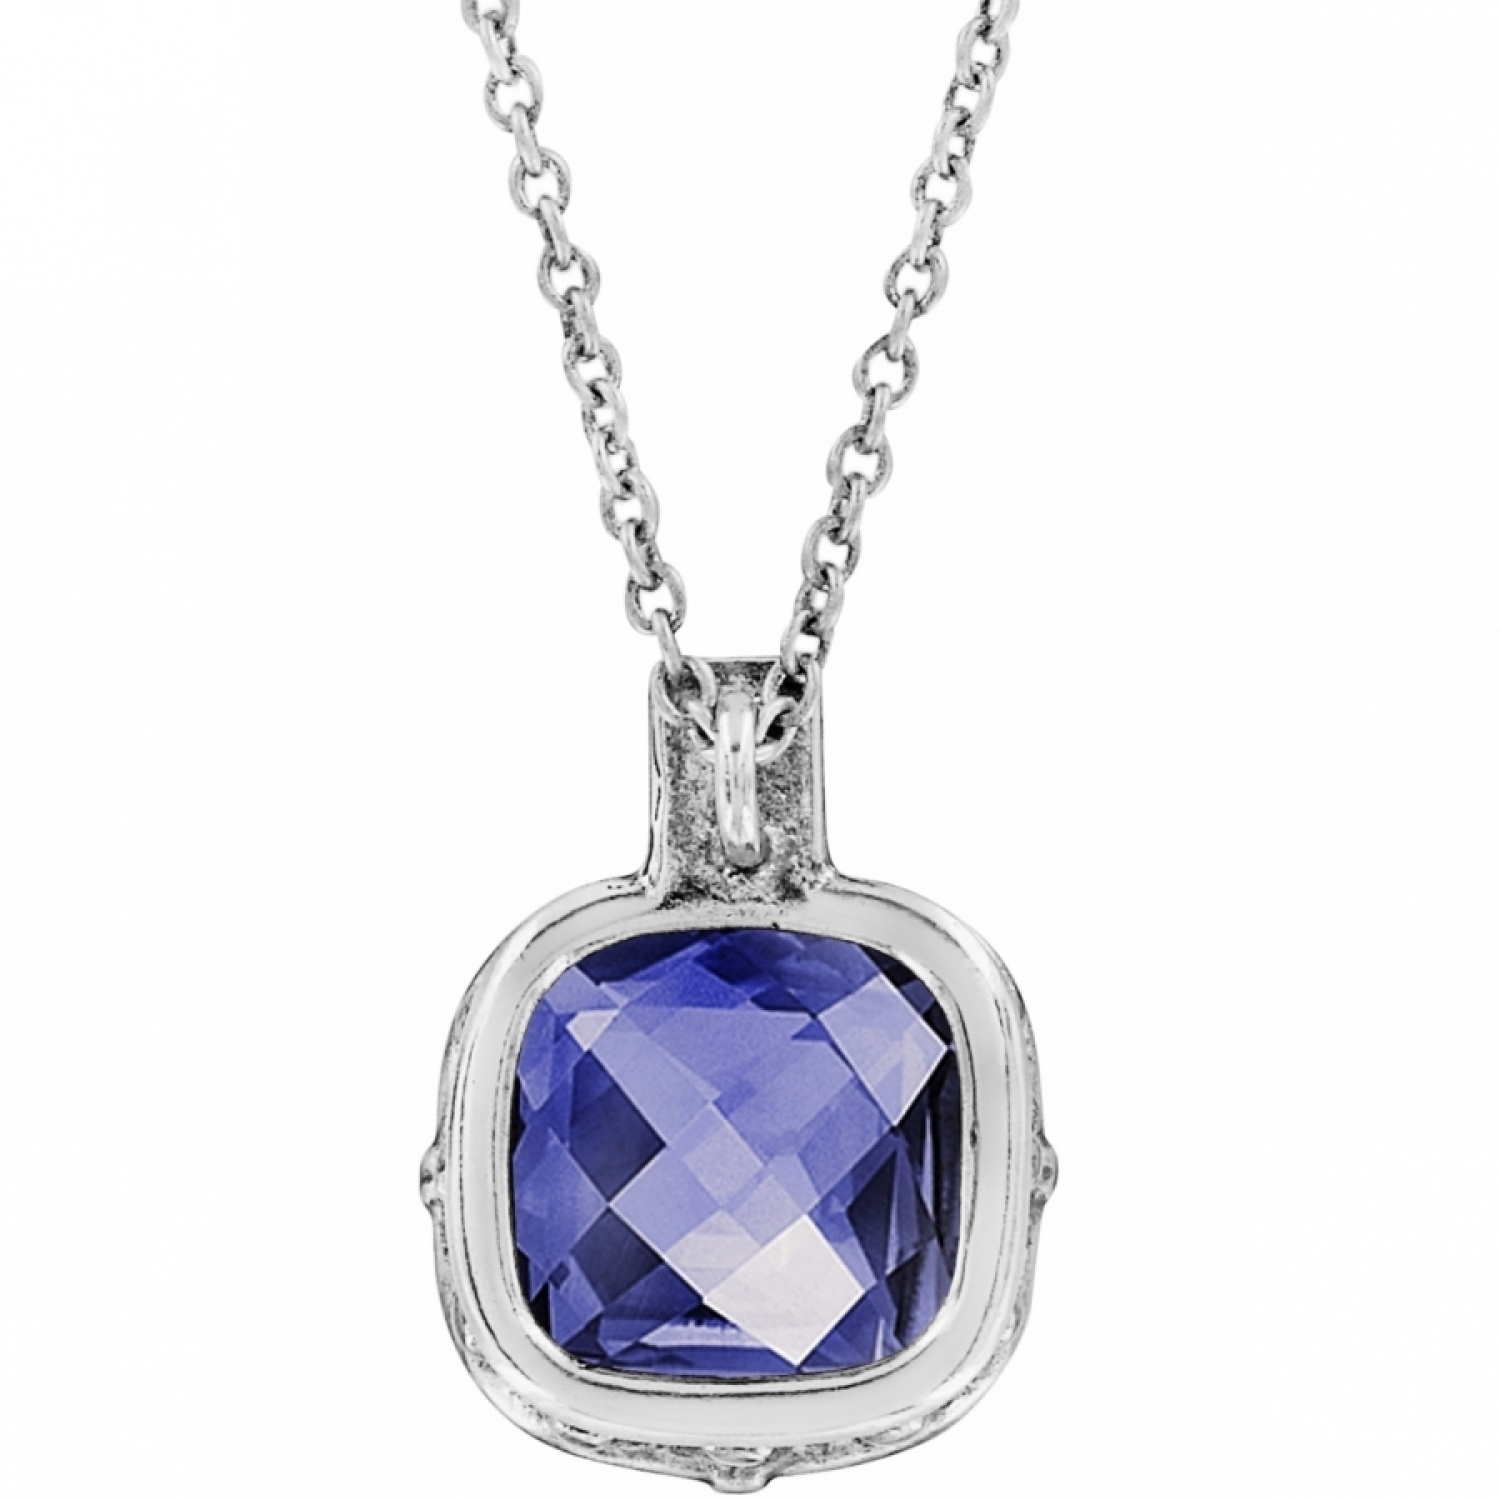 pendants carats amethyst radiant gold peora white jewelry prod necklace peoraimages pendant alexandrite src cut necklaces b com sears